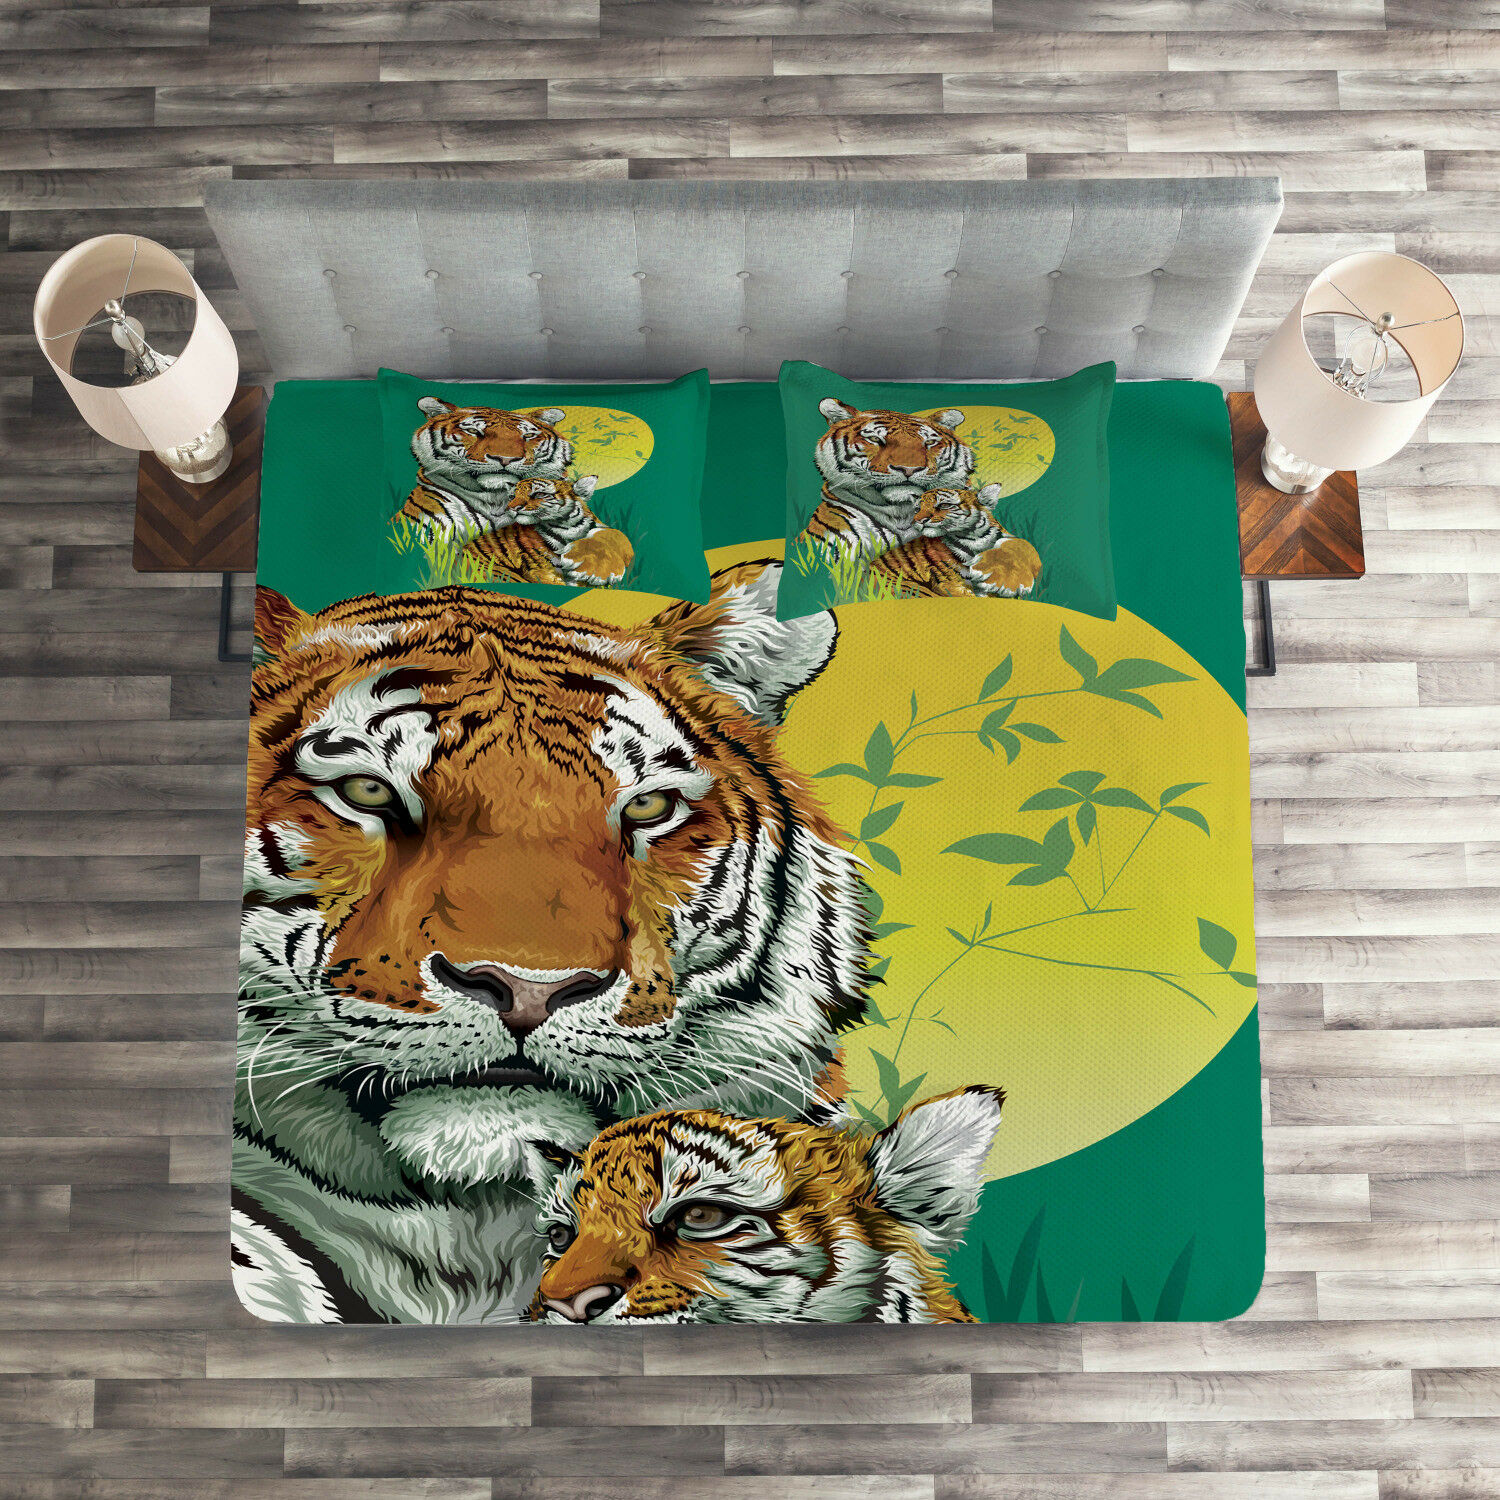 Safari Quilted Coverlet & Pillow Shams Set, Tiger Family in Jungle Print